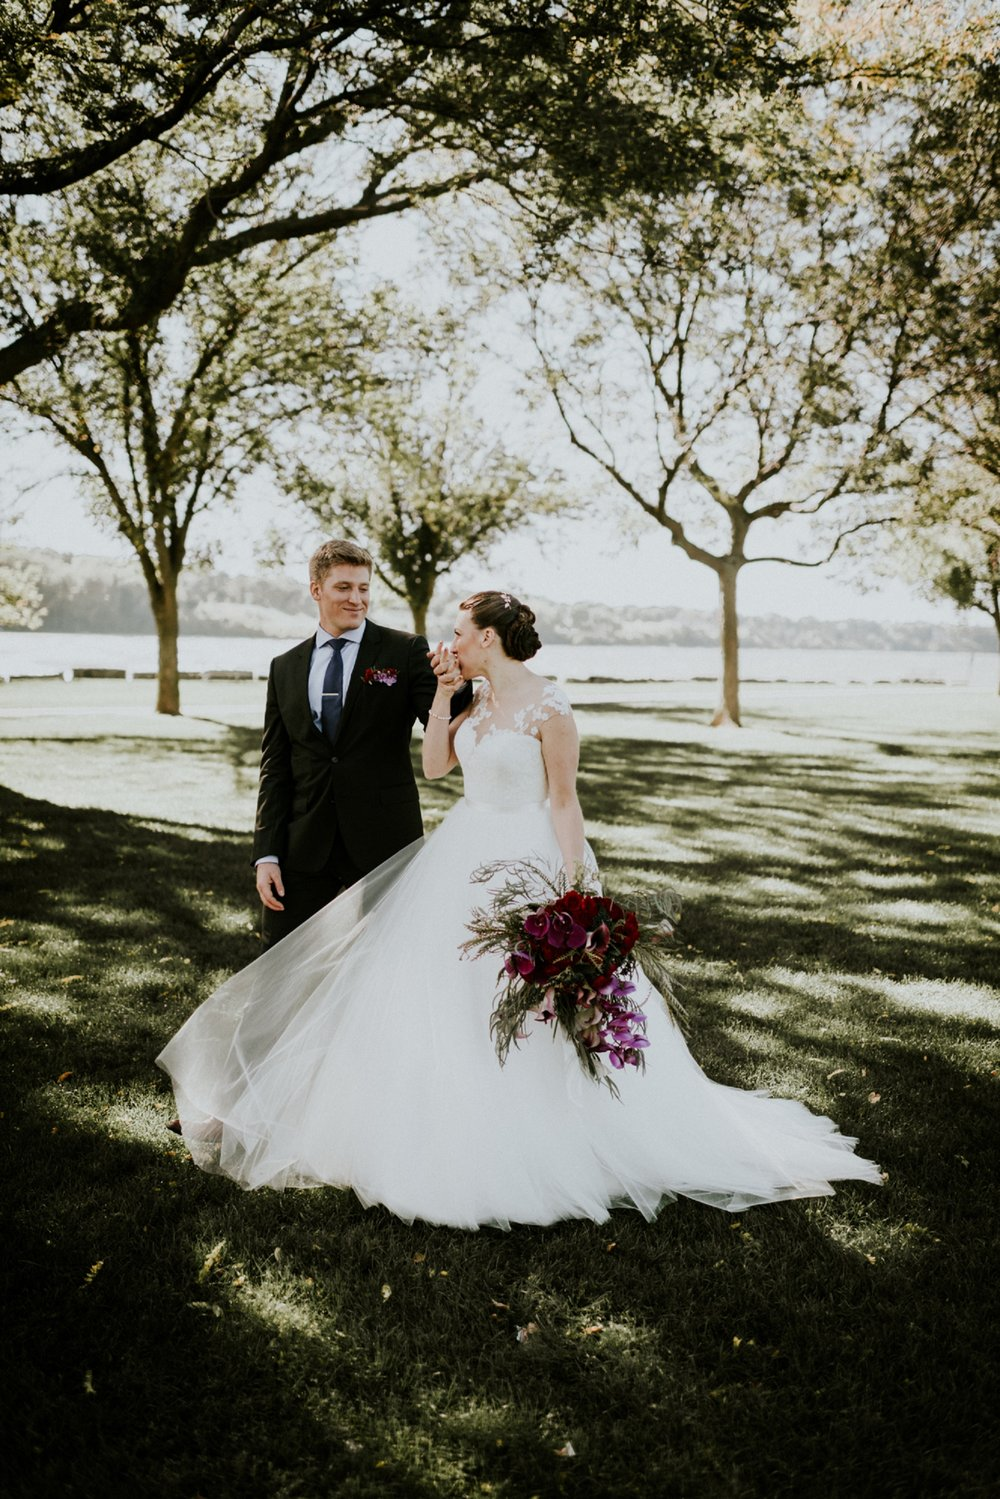 Romantic-Industrial-Warehouse-Wedding_Mallory+Justin-Photographers_0179.jpg